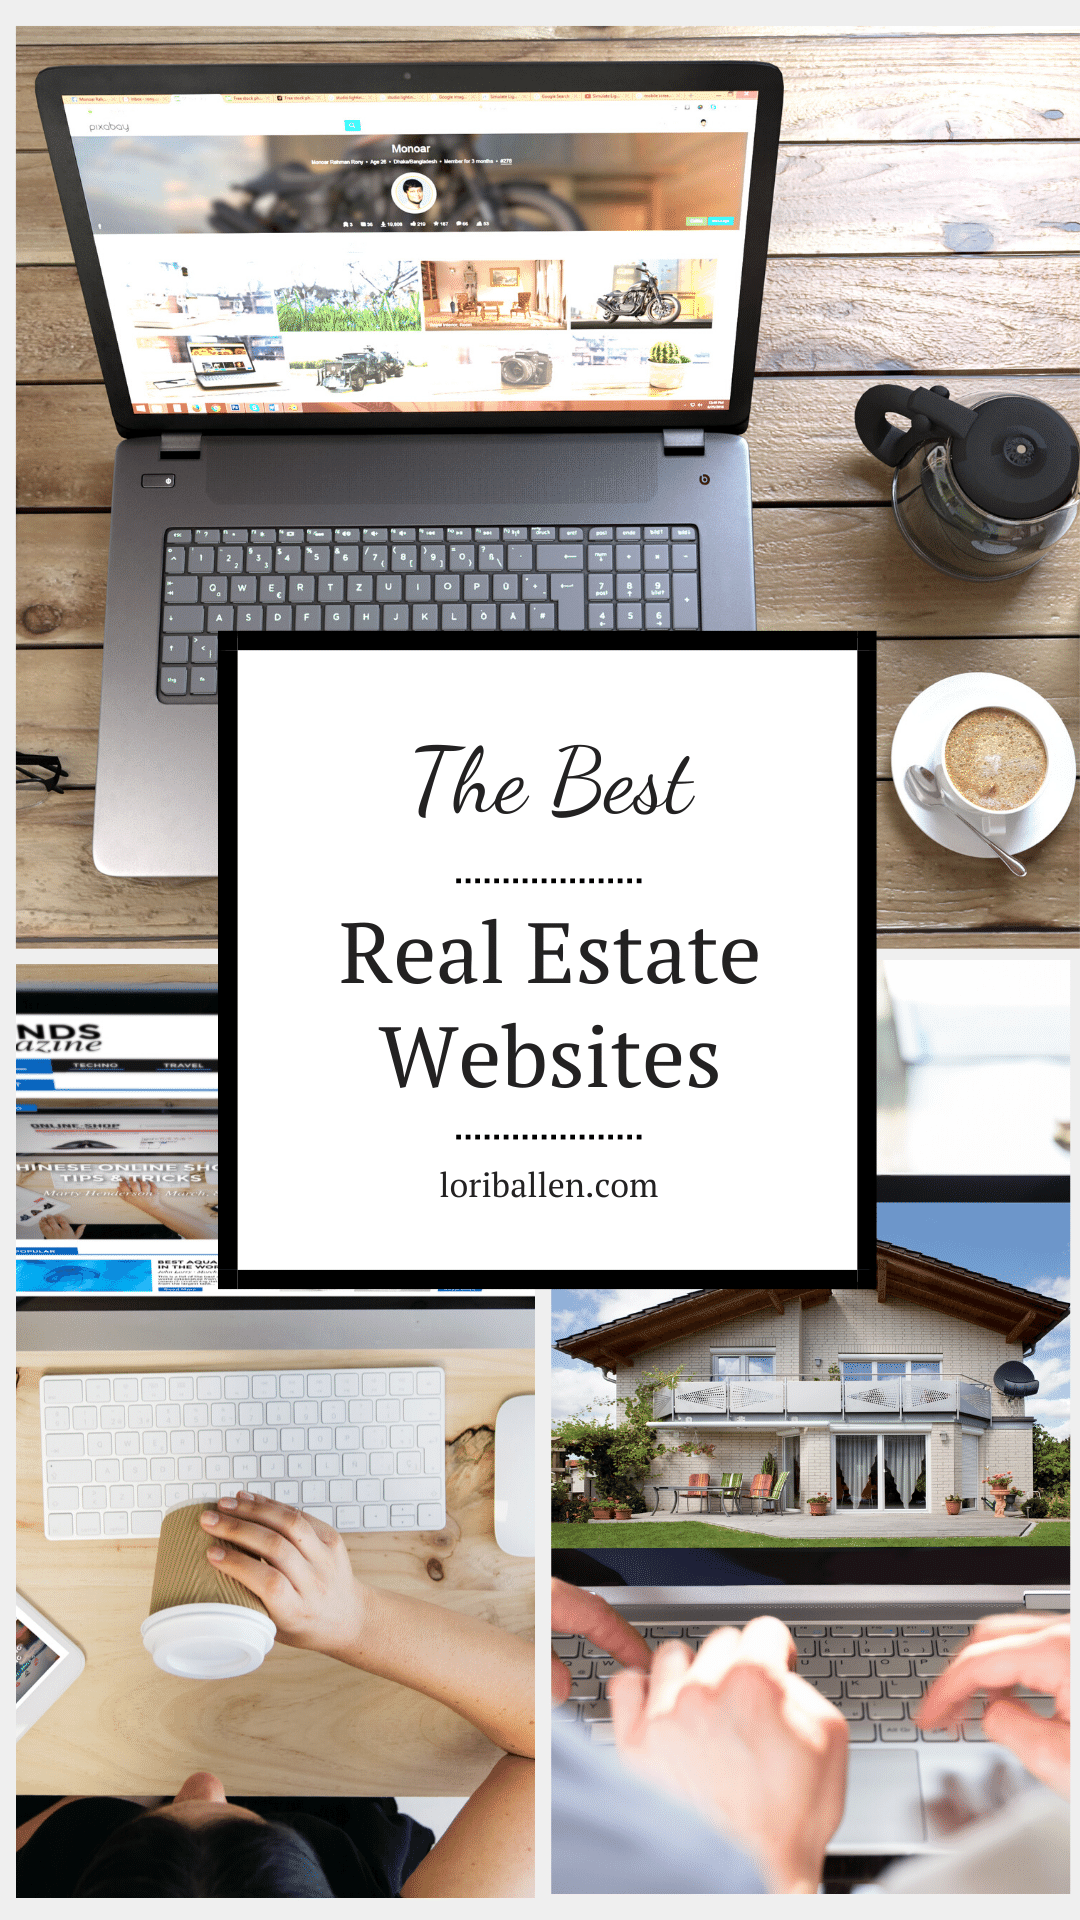 This article offers the components of a great real estate agent website and website designers are providing the best real estate agent websites.